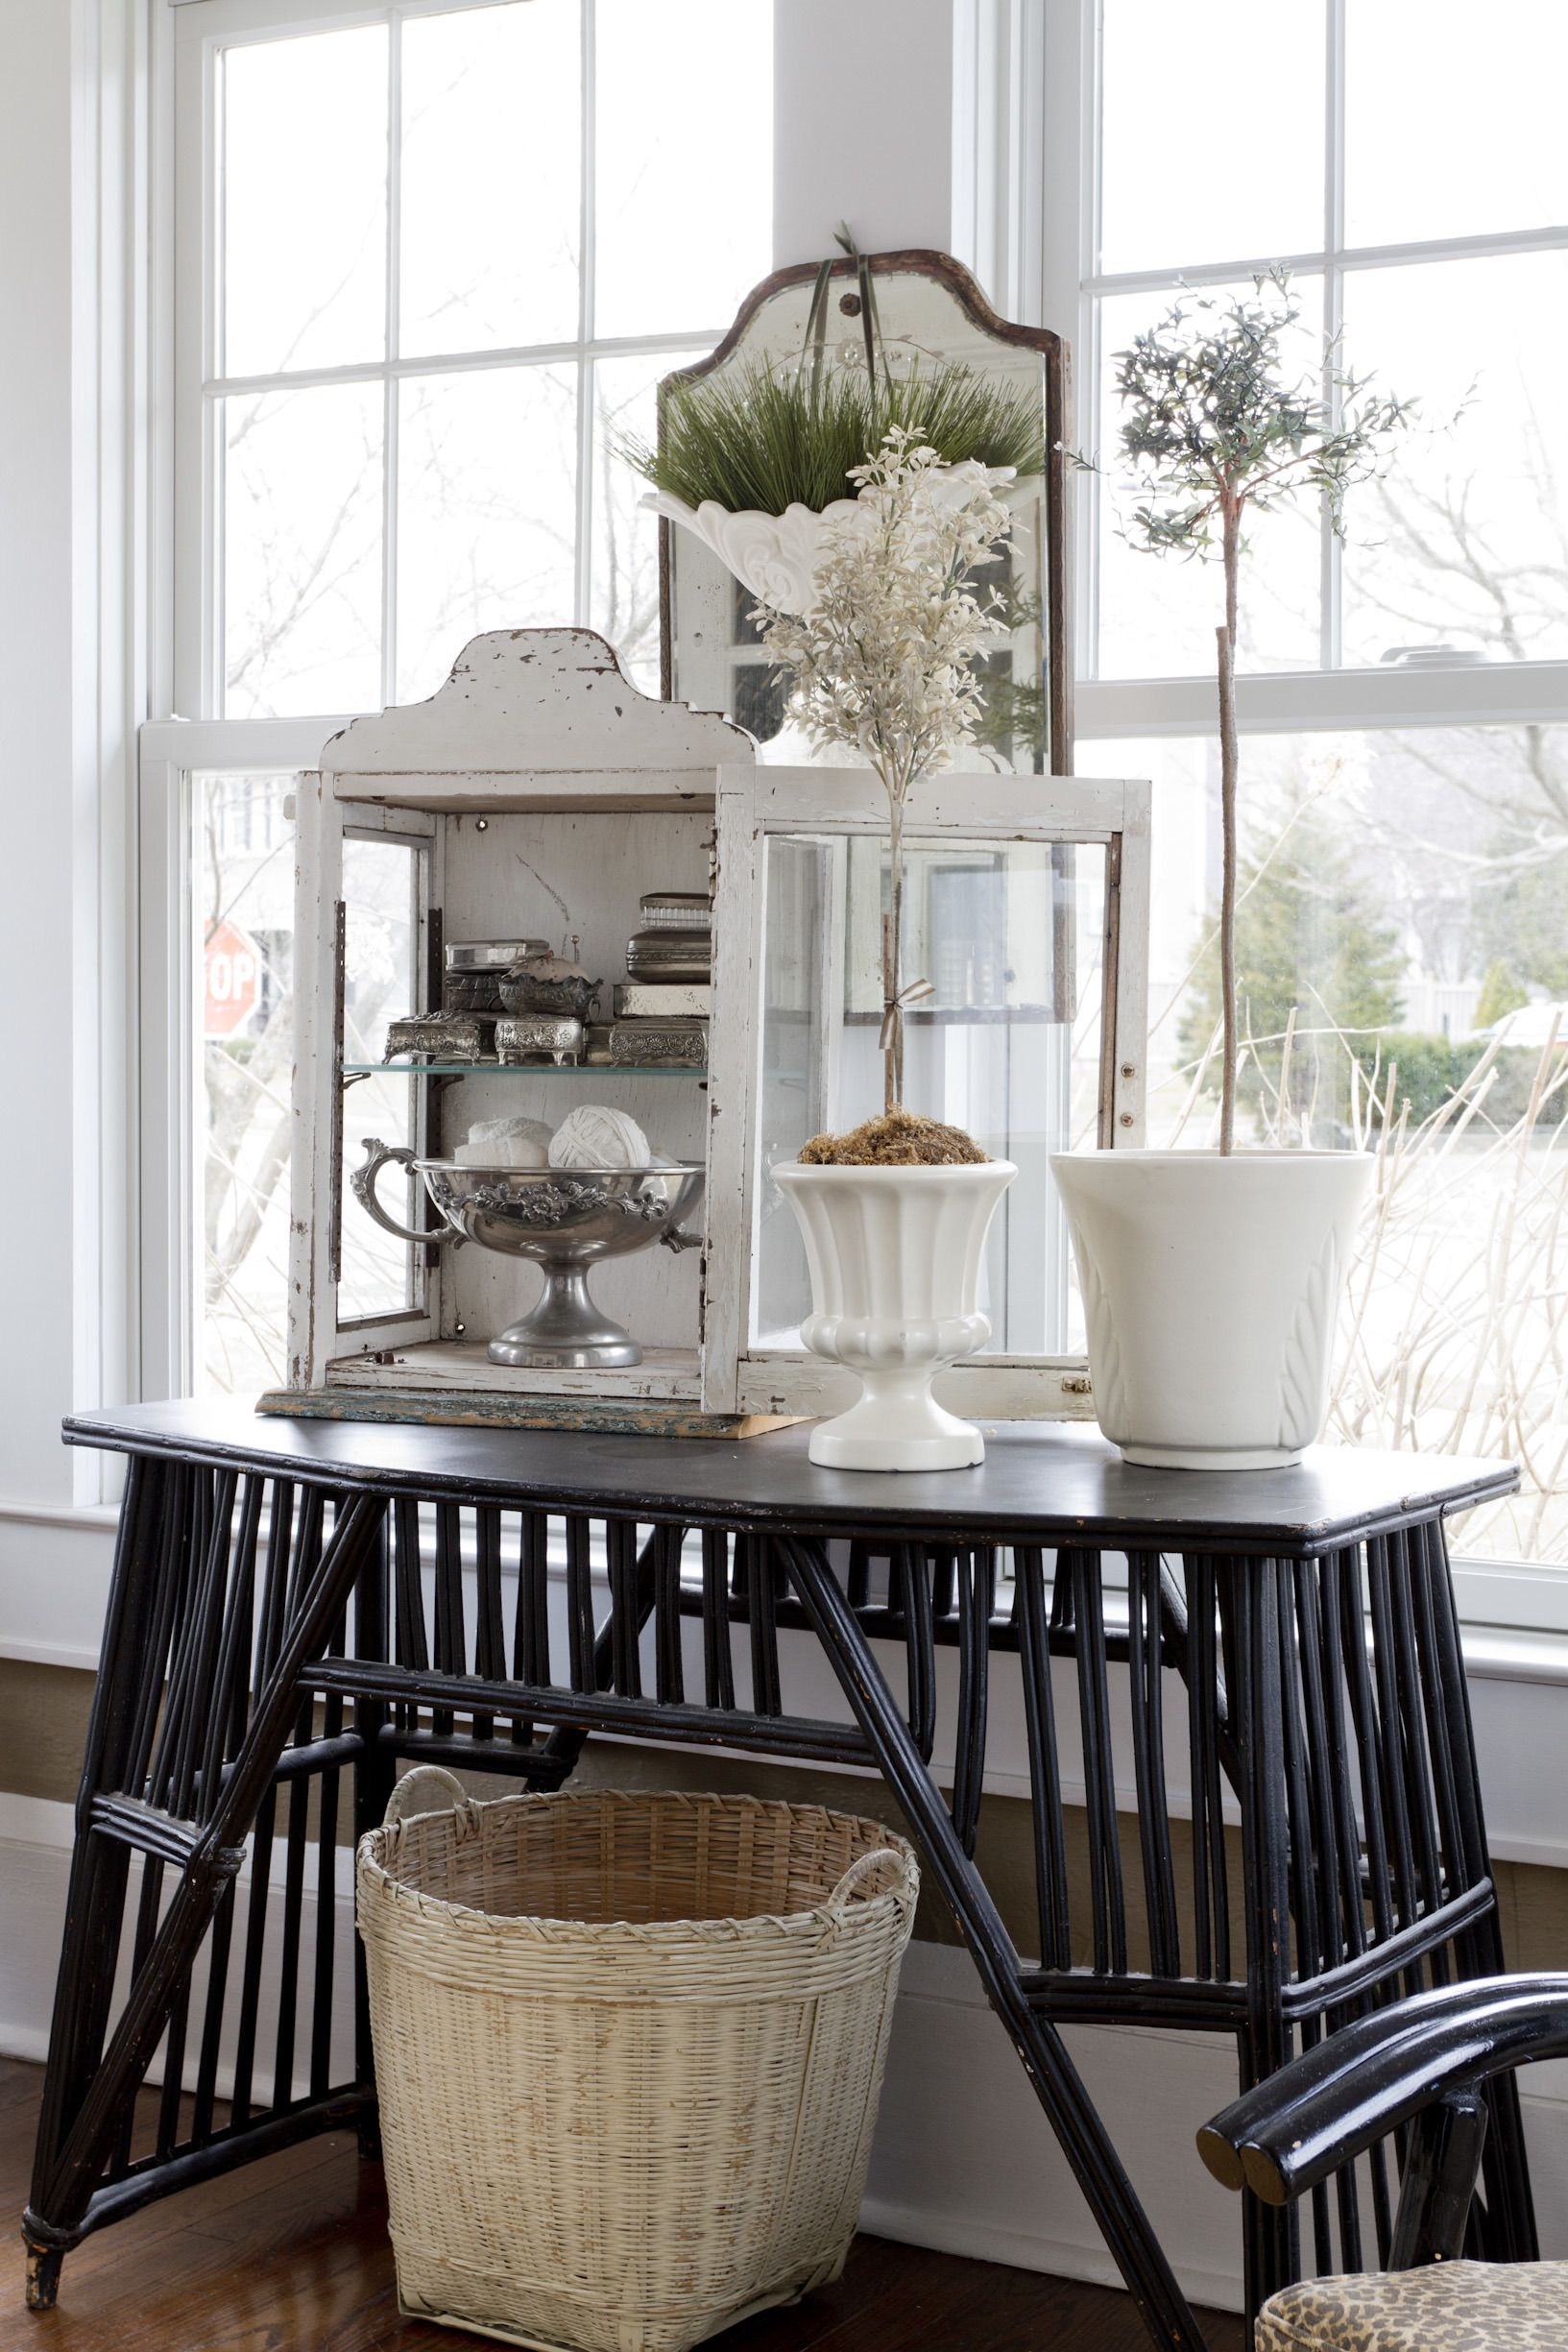 #entryway, #basket, #entry-table, #side-table, #mirror  Photography: Rikki Snyder - rikkisnyder.com  Read More: http://www.stylemepretty.com/living/2014/05/14/home-tour-joanna-madden/